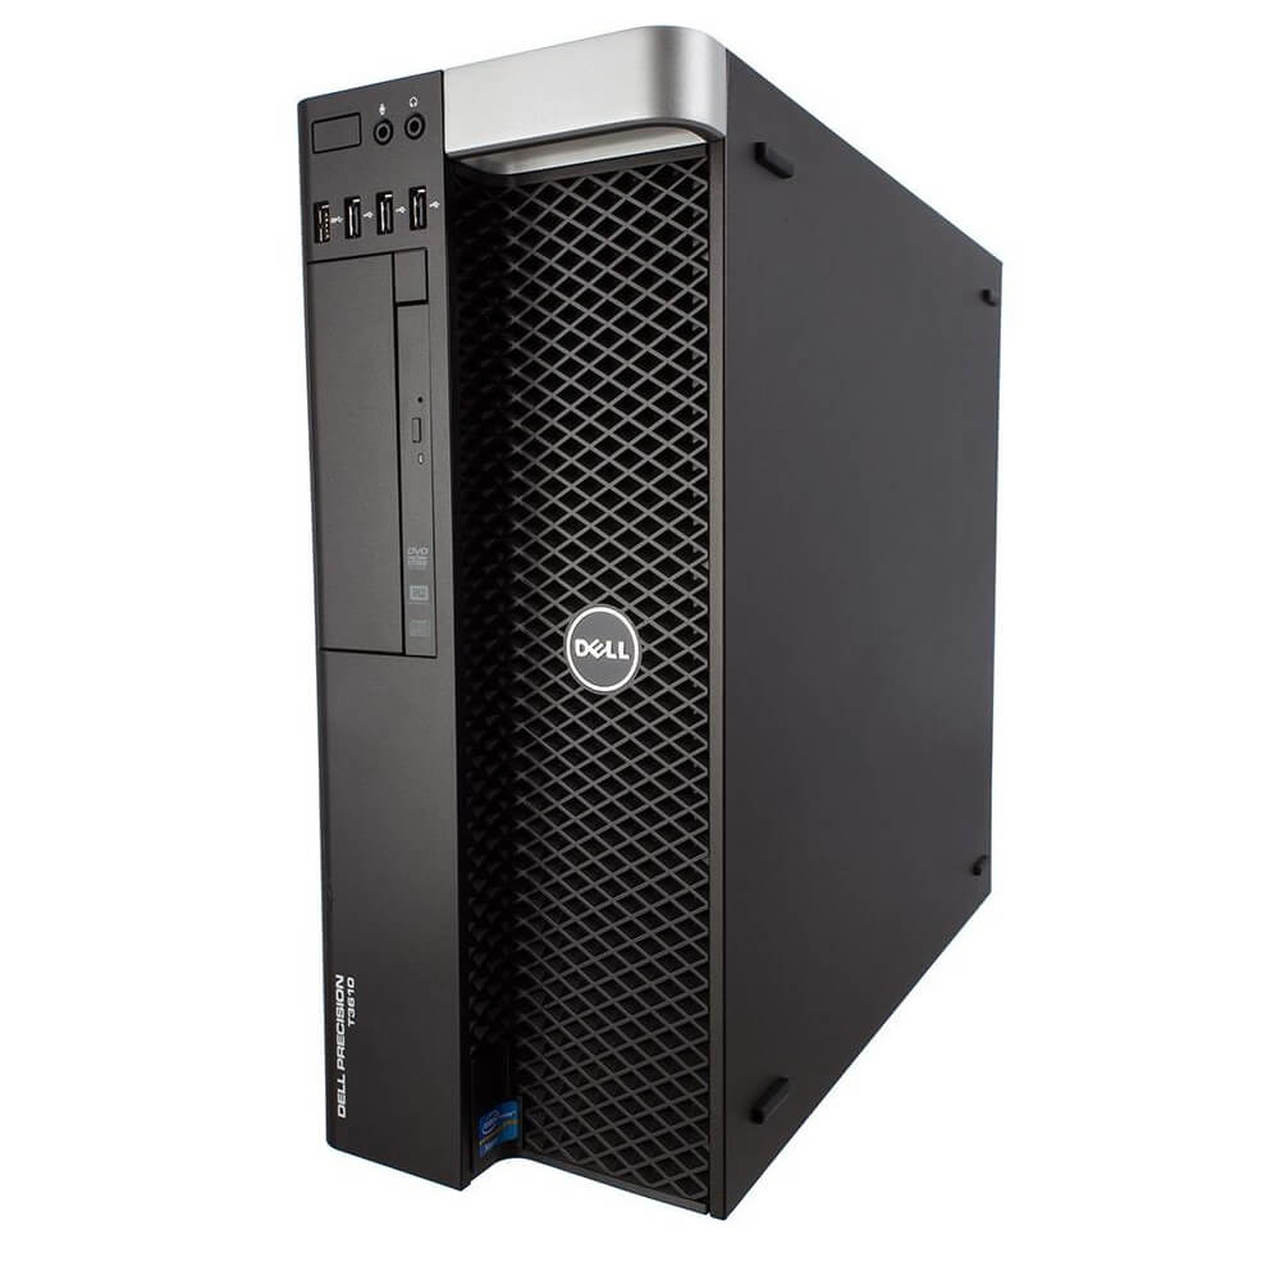 Dell Precision T3610 Tower Quad Core Intel Xeon 3.0GHz, 8GB Ram, 500GB HDD, DVD-RW, Windows 10 Pro 64 Desktop Computer